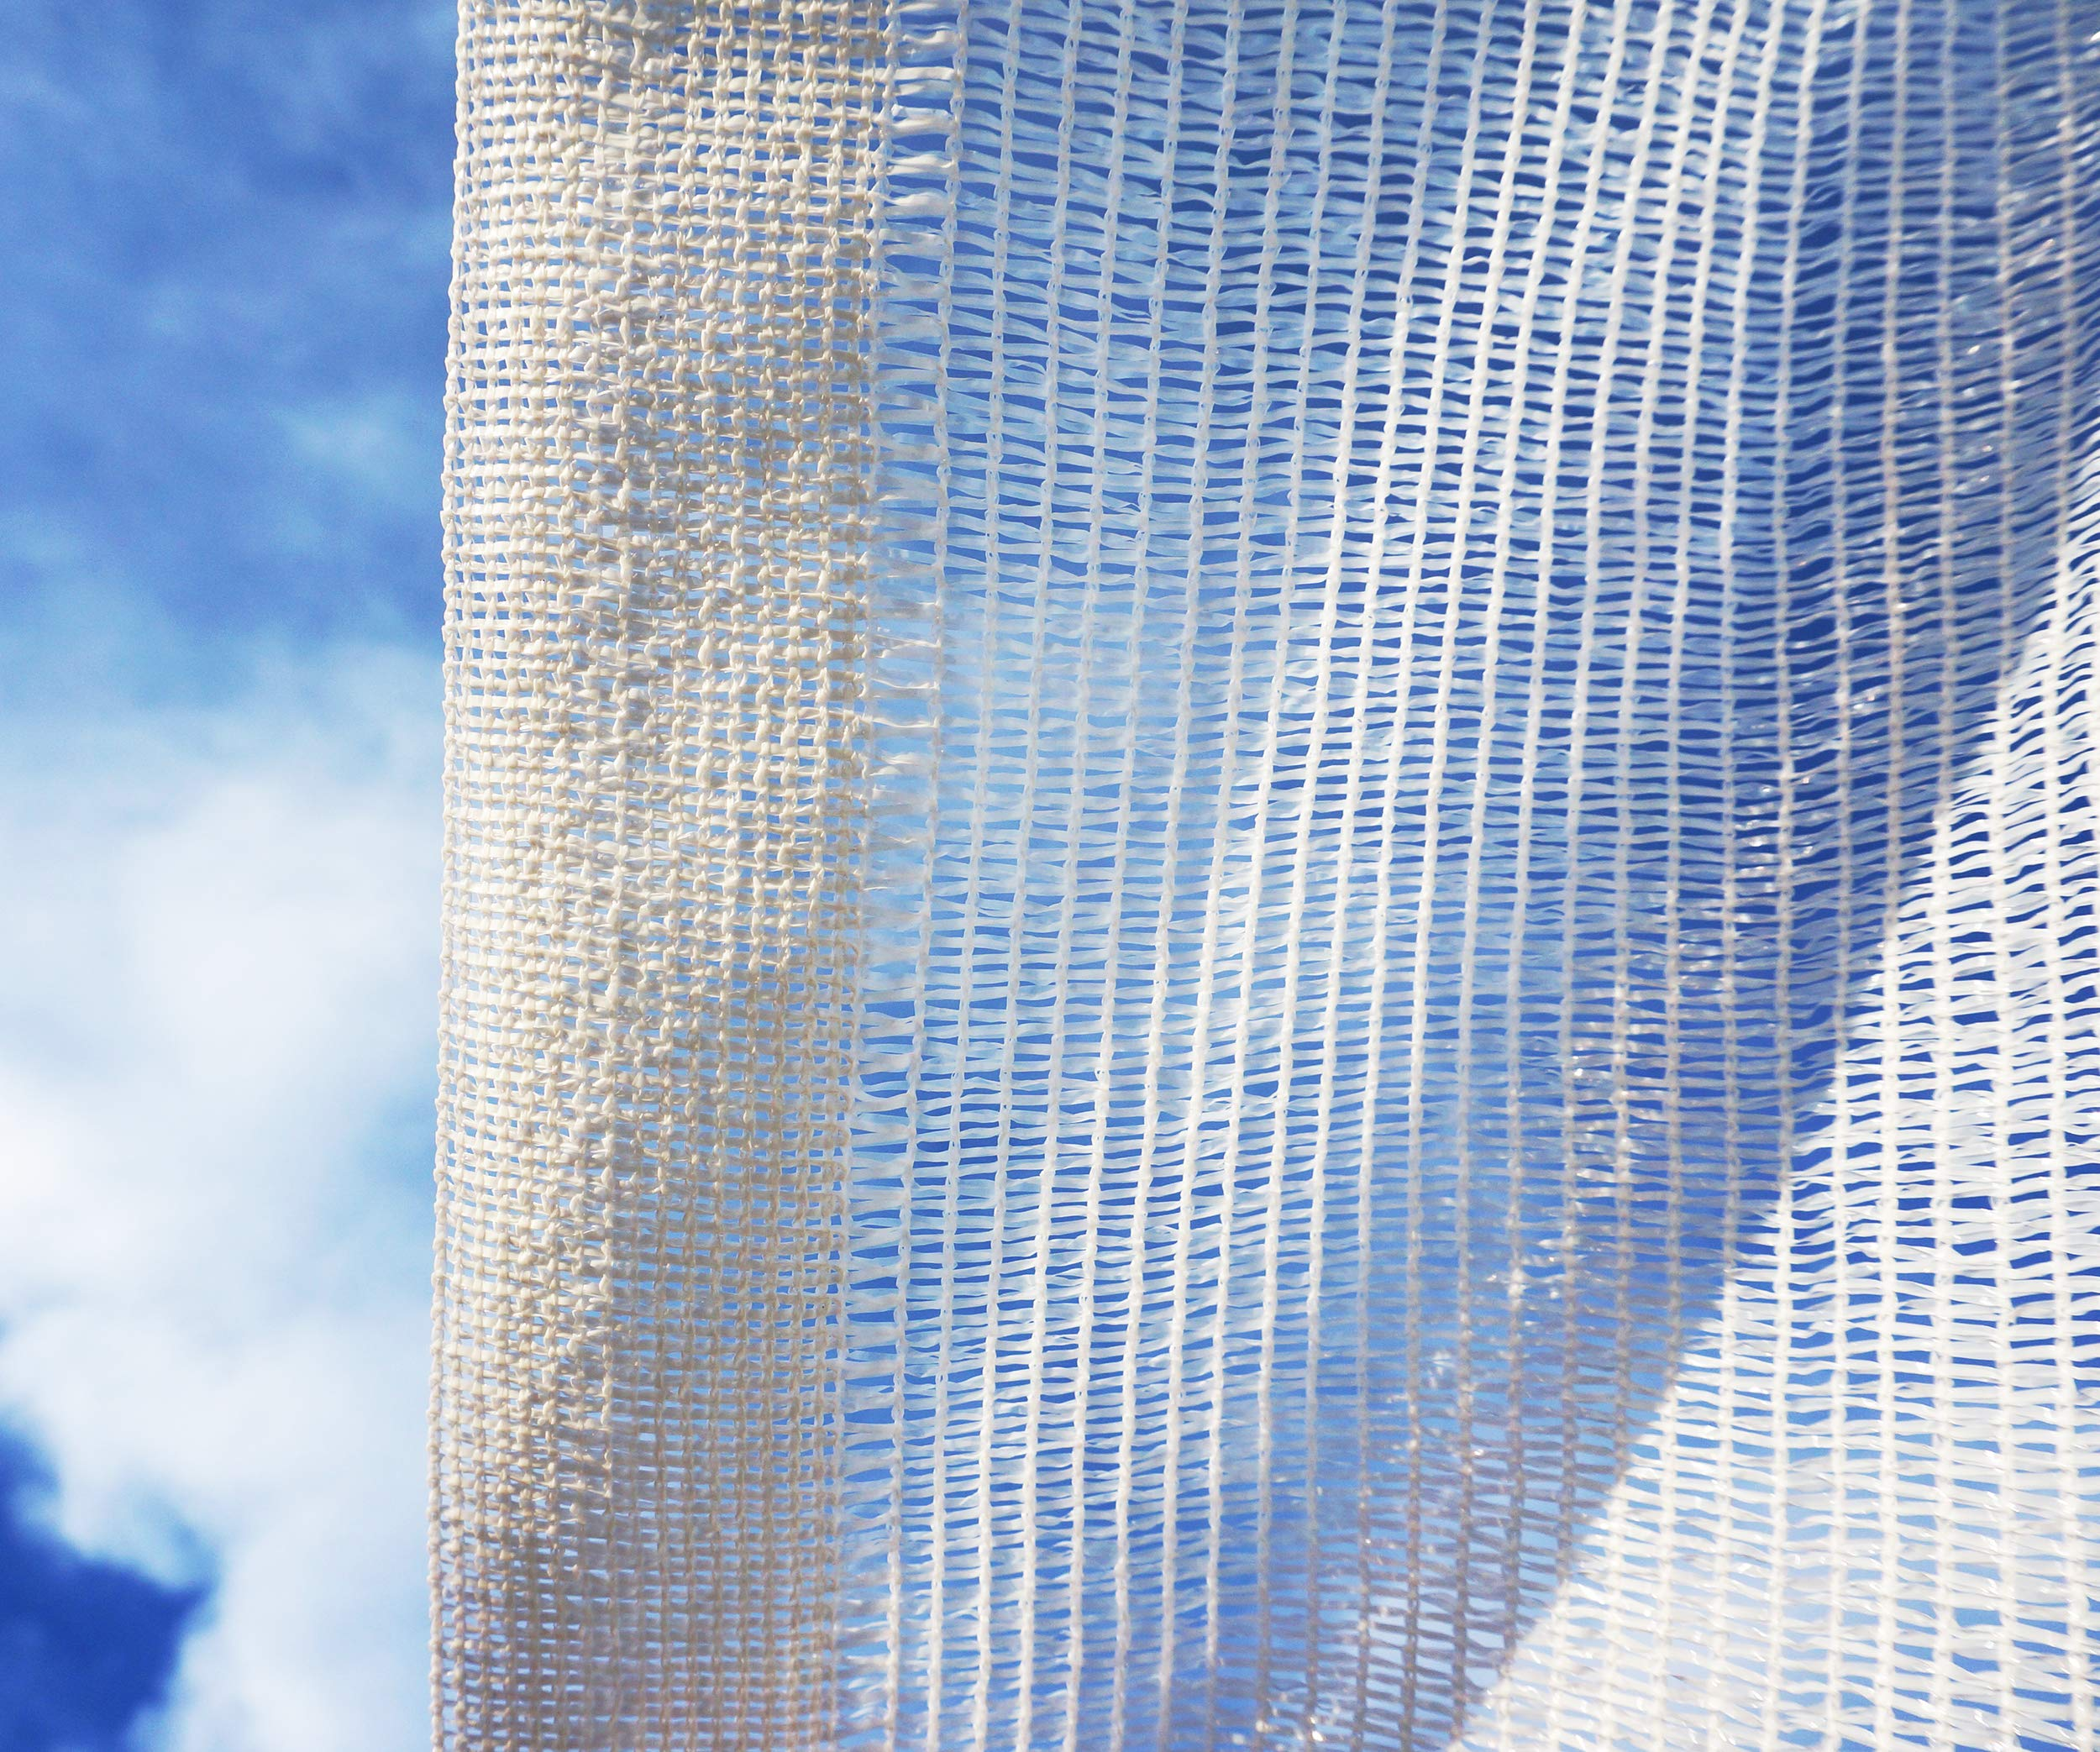 SHANS Shade Cloth Fabric White 50% Sunshine Ultraviolet Blocking Rate Free Clips Plastic Grommets (10ft x 210ft)